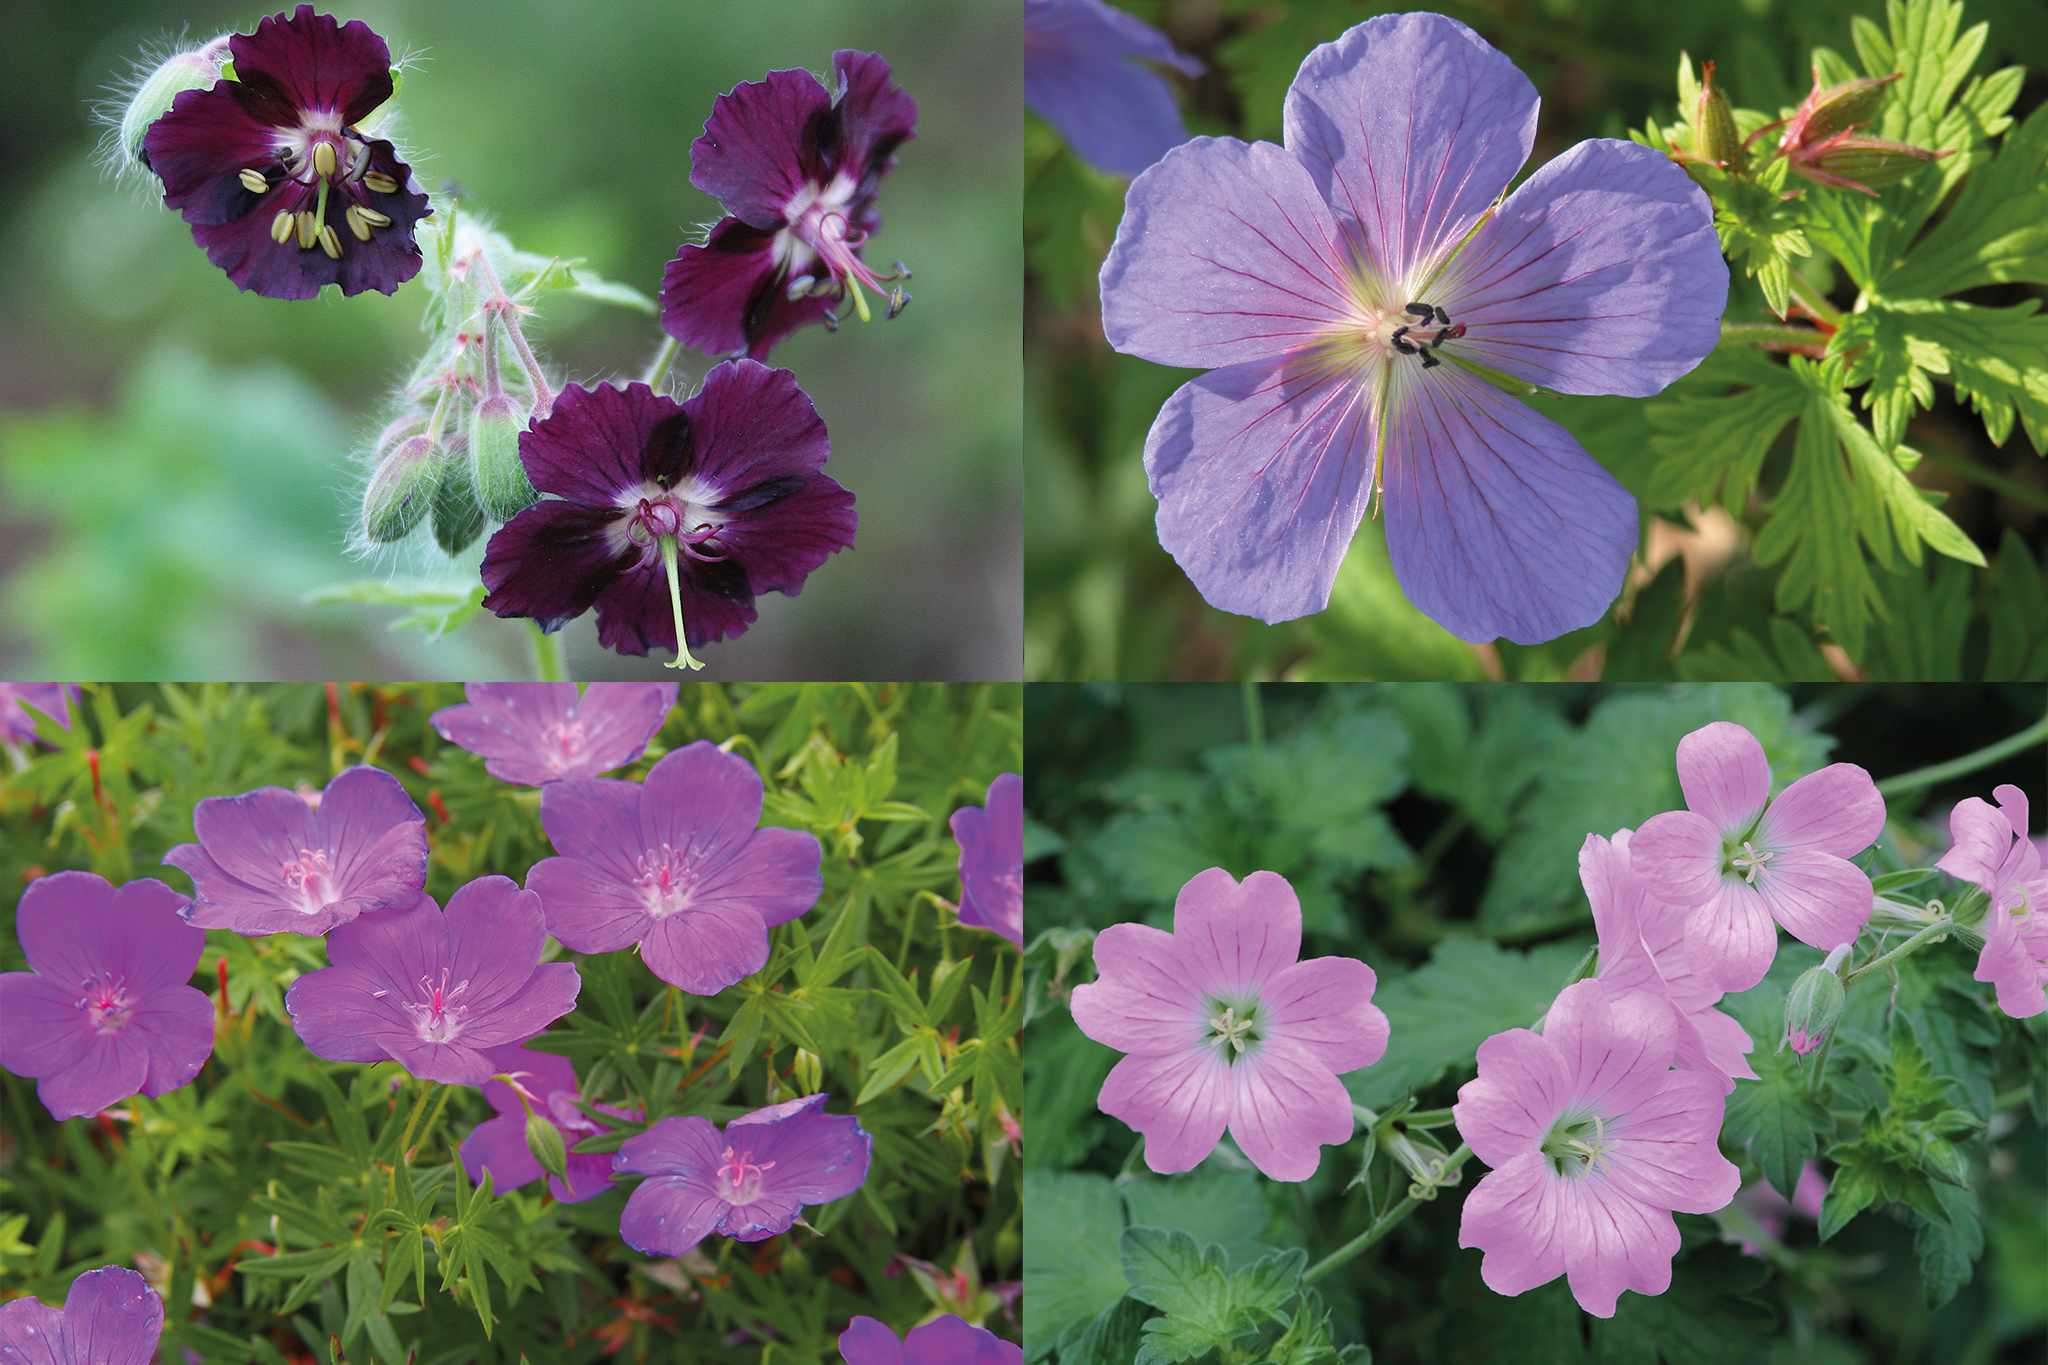 tandm-hardy-geranium-collection-2048-1365